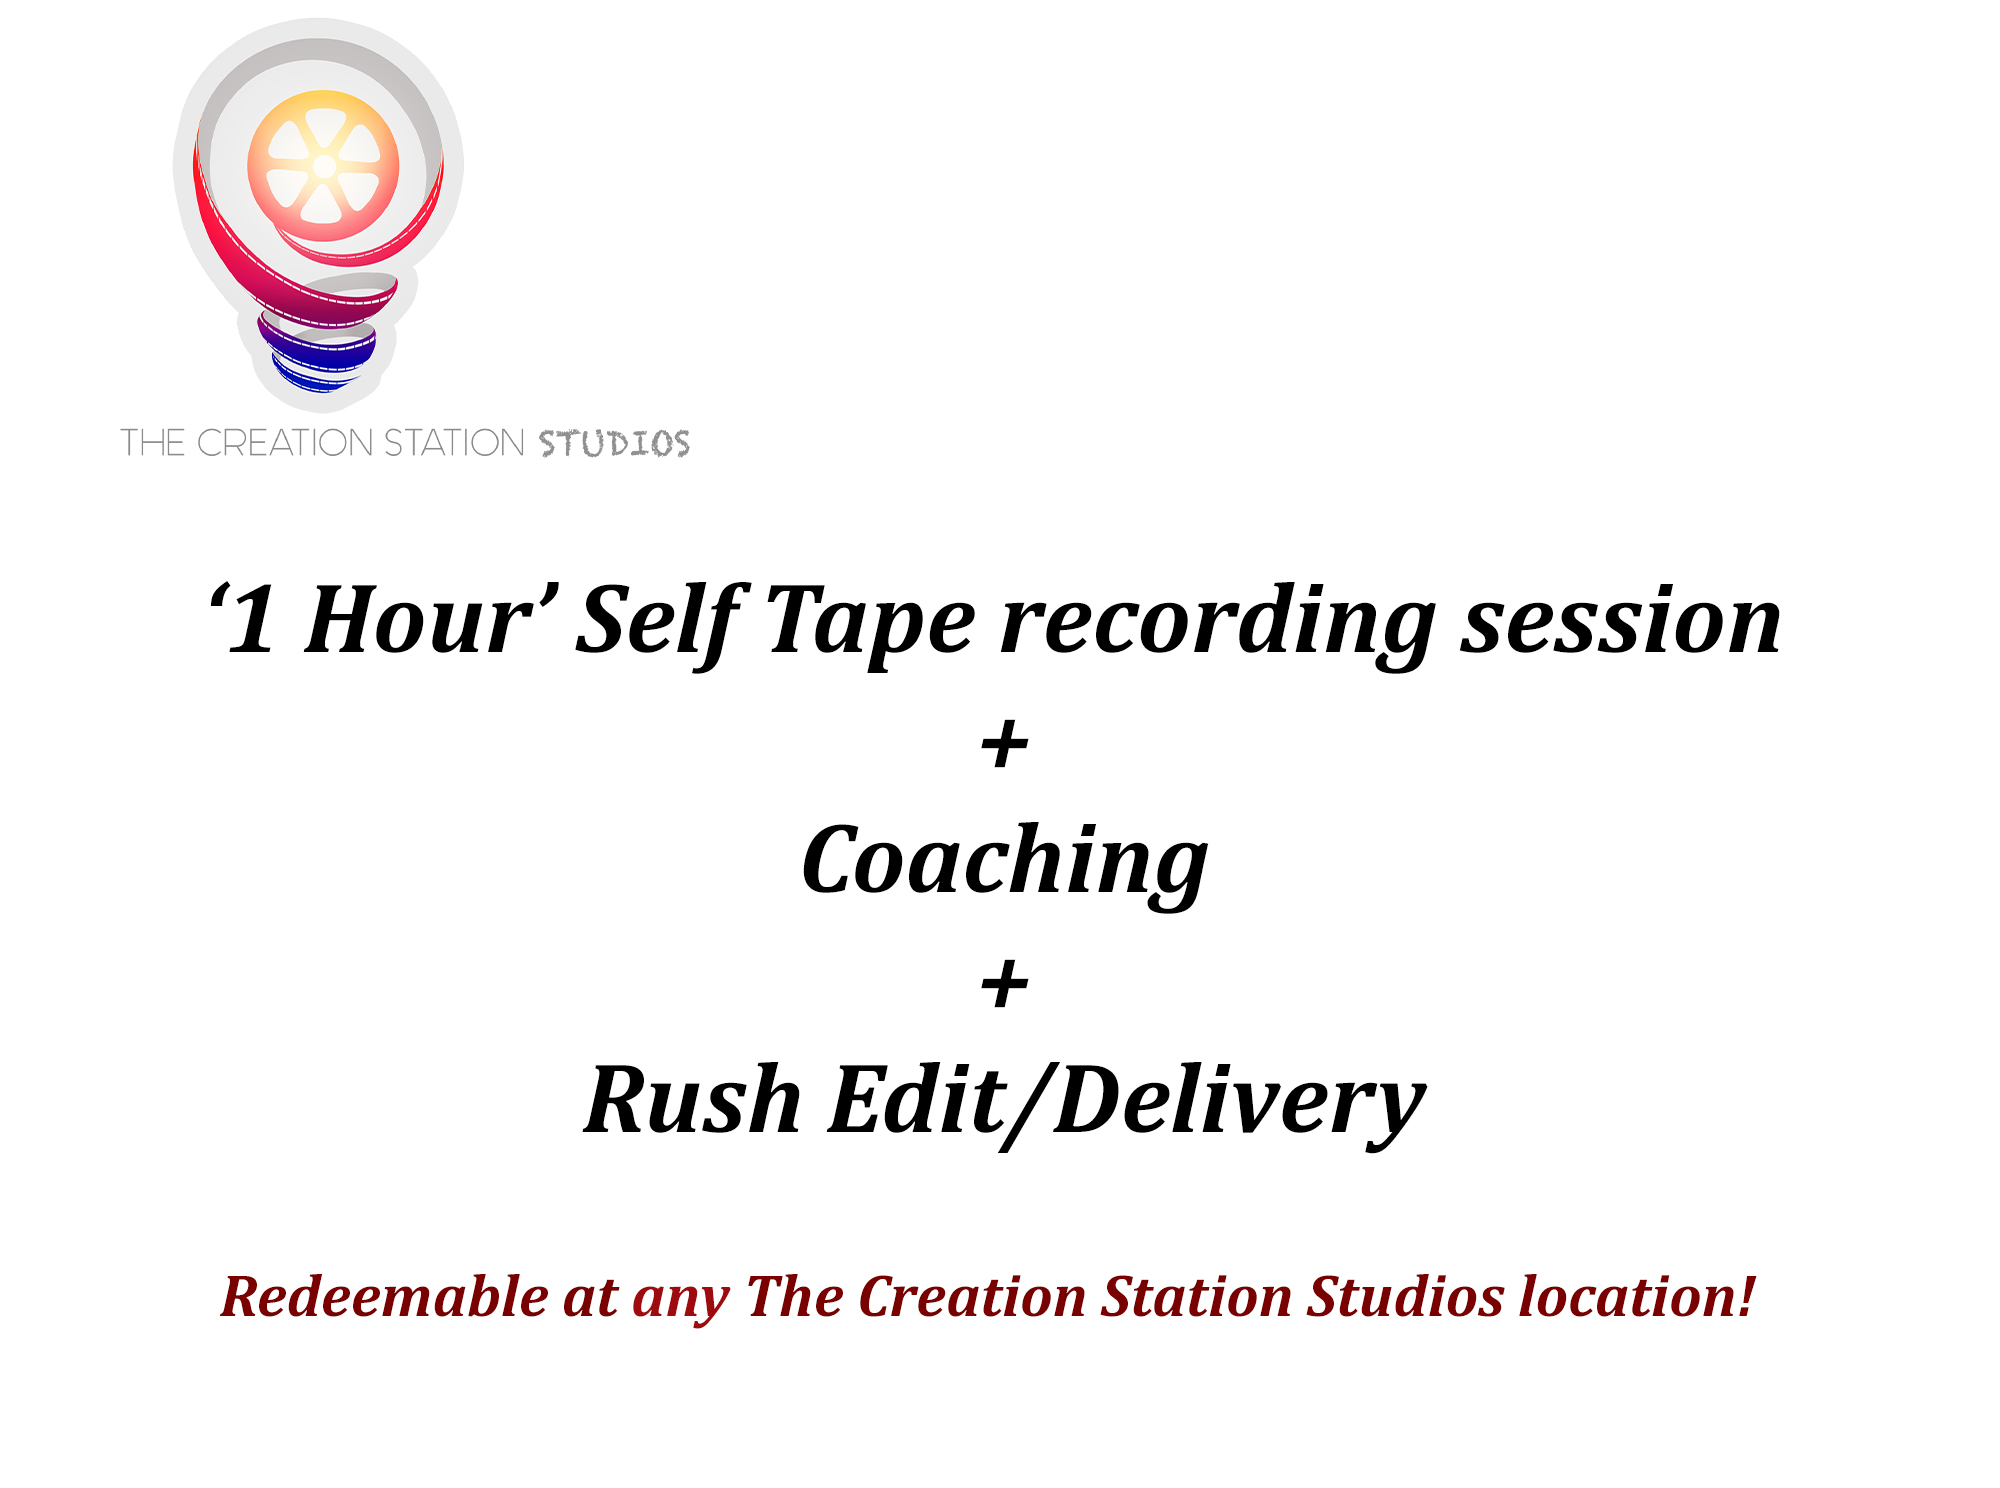 30 Minute self tape video audition - sale - the creation station studios - reatilopolis